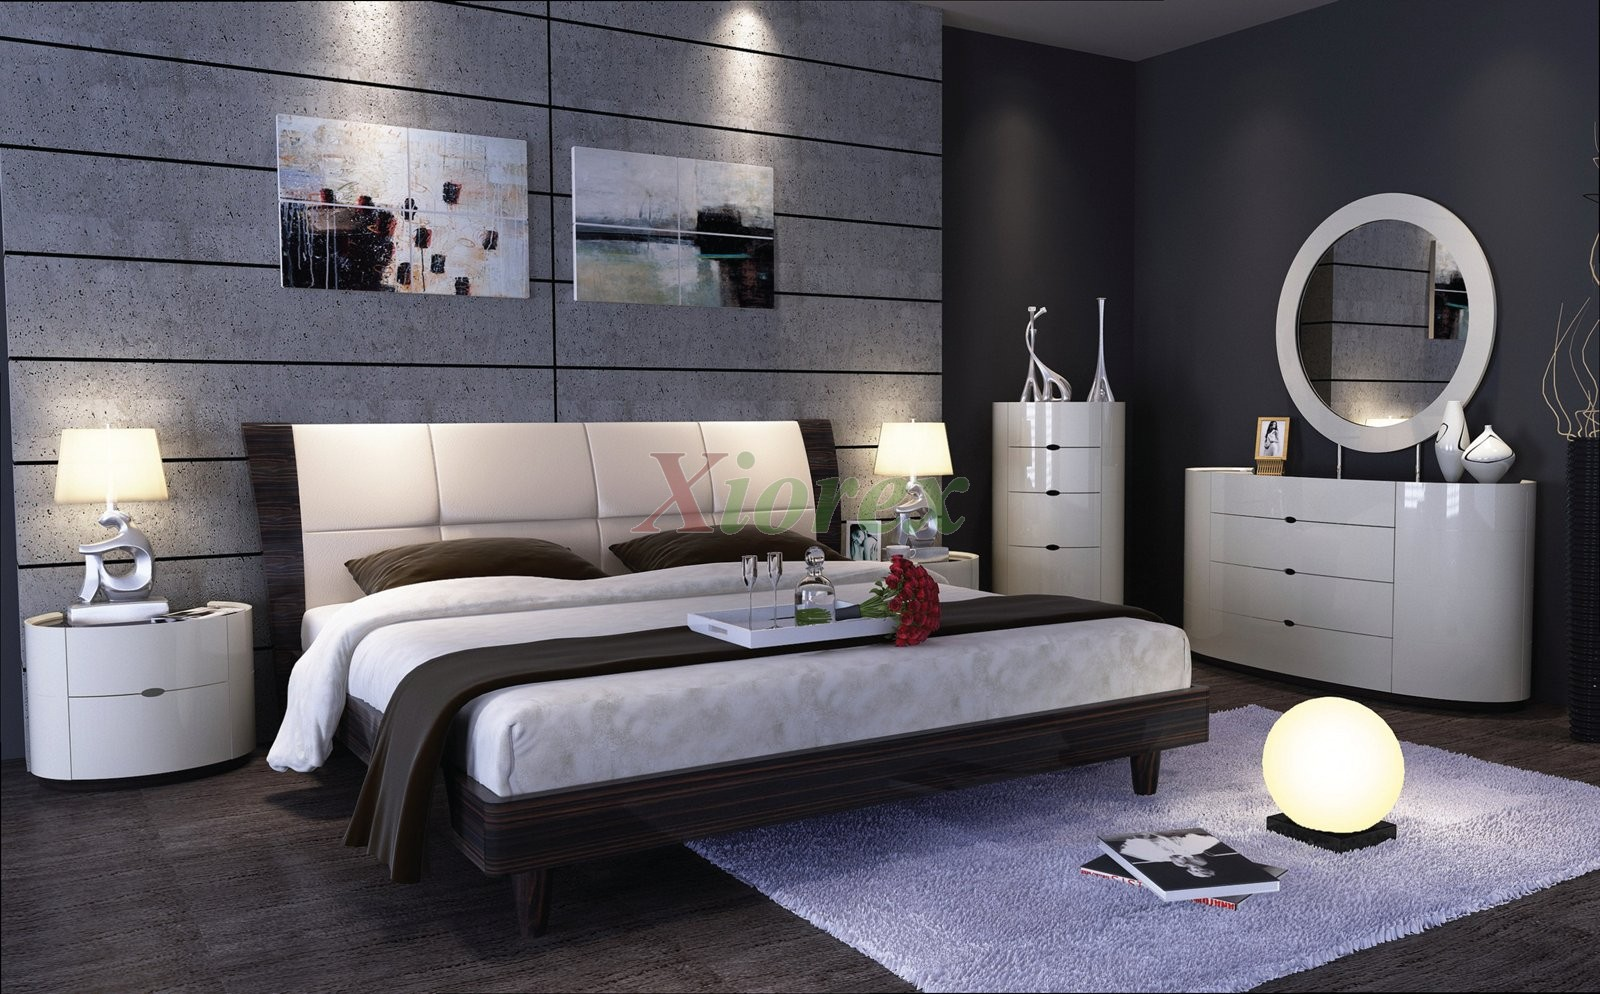 Modern Bed Sets With Strong Structure That Come Beautifully Designed Headboards And Deep Curved Corners On The Dresser Chest Nightstands